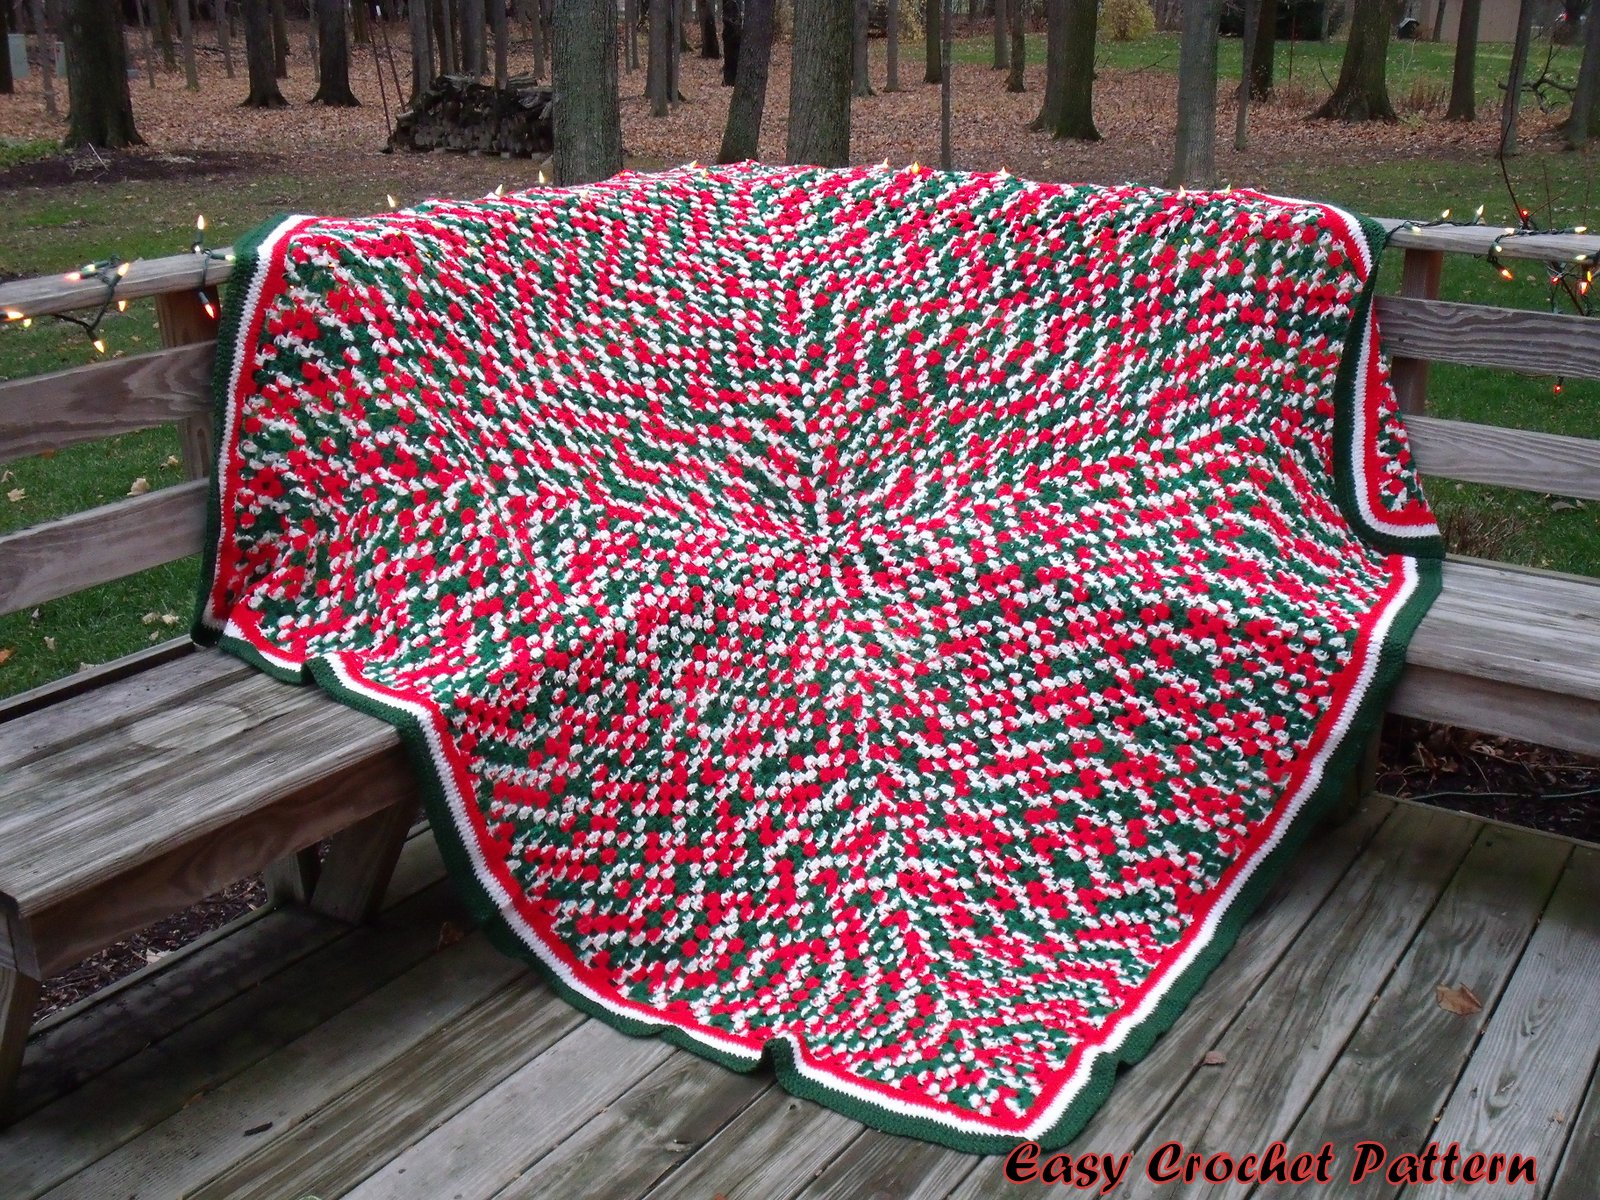 Easy Crochet Afghan : Easy Crochet Pattern: Crocheted Christmas Afghans and Tree Skirt